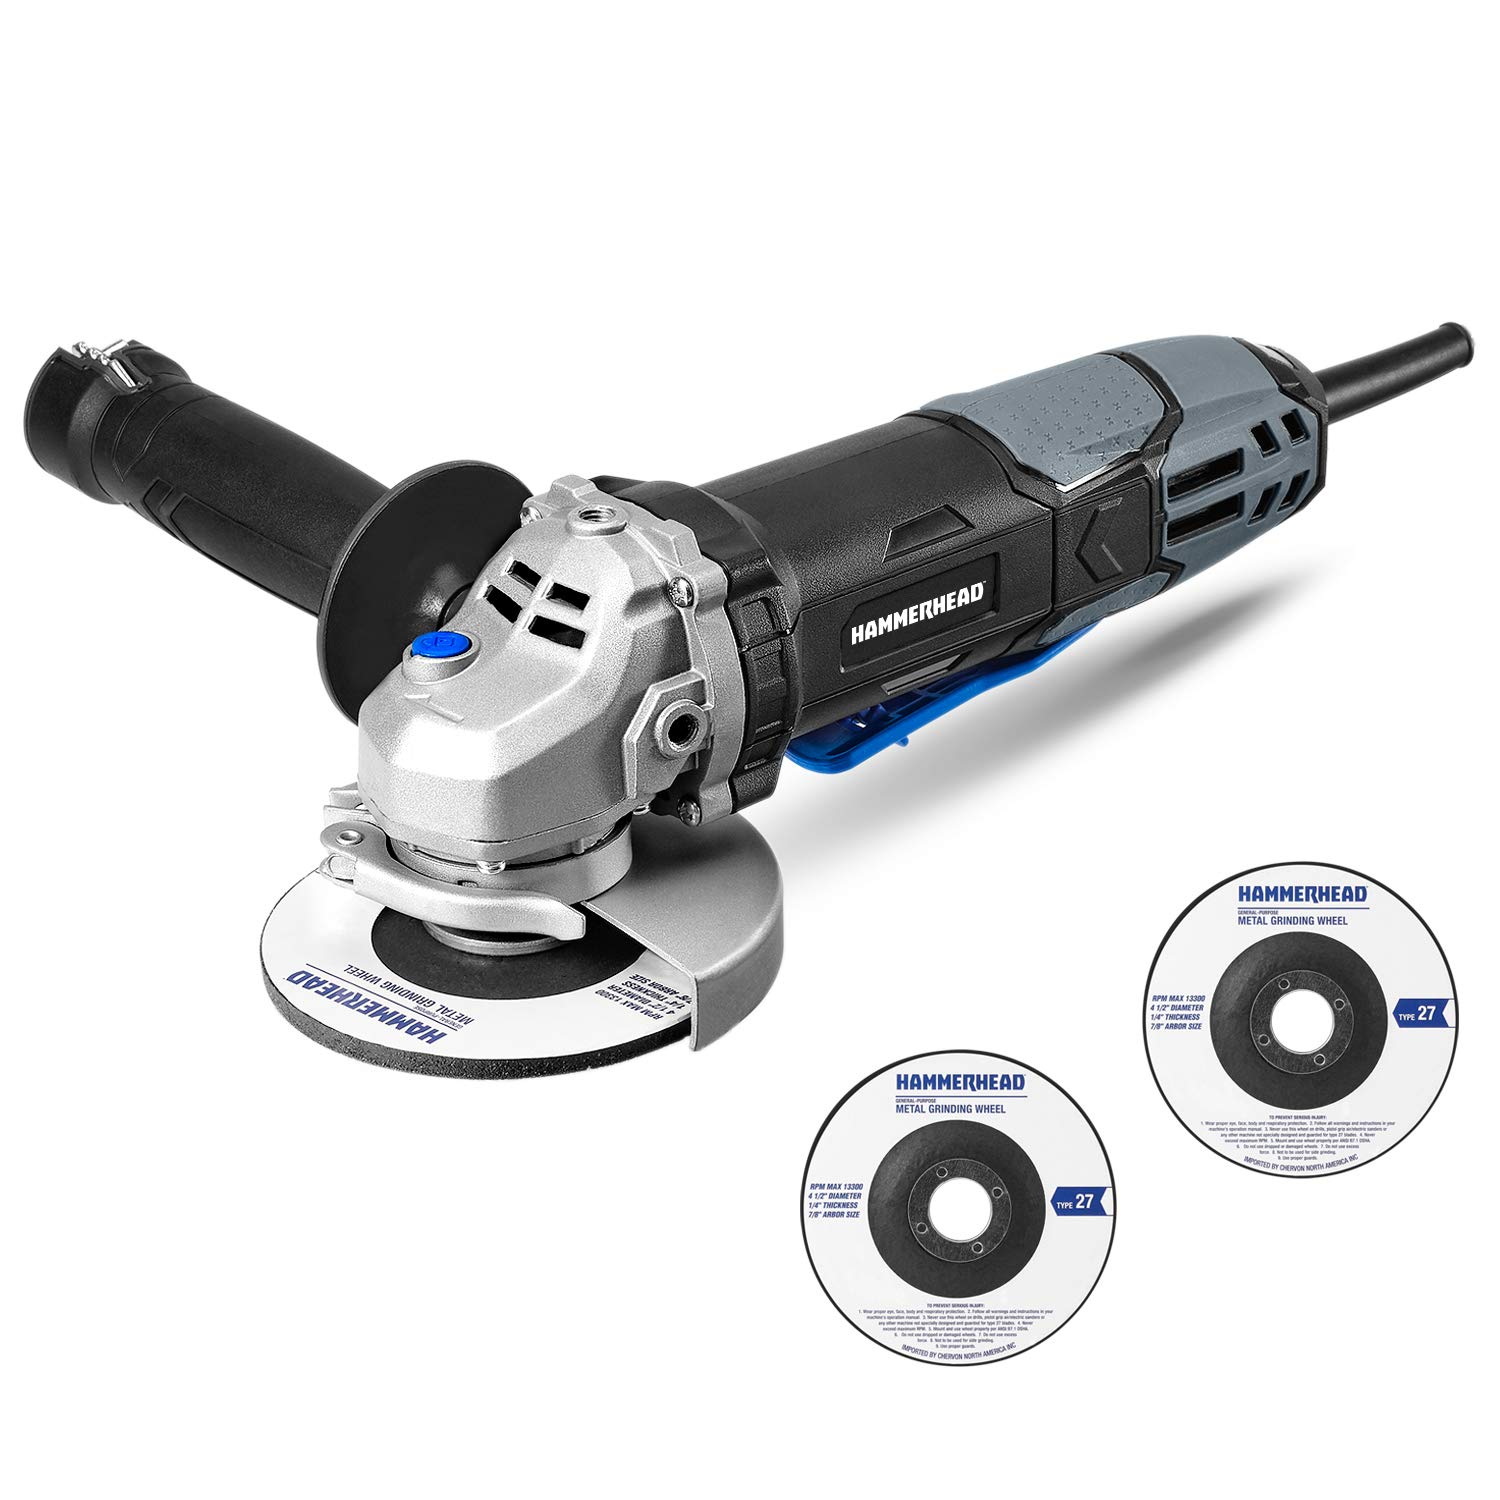 Hammerhead 6-Amp 4-1/2 Inch Angle Grinder with 3 pcs Grinding Wheel – HAAG060